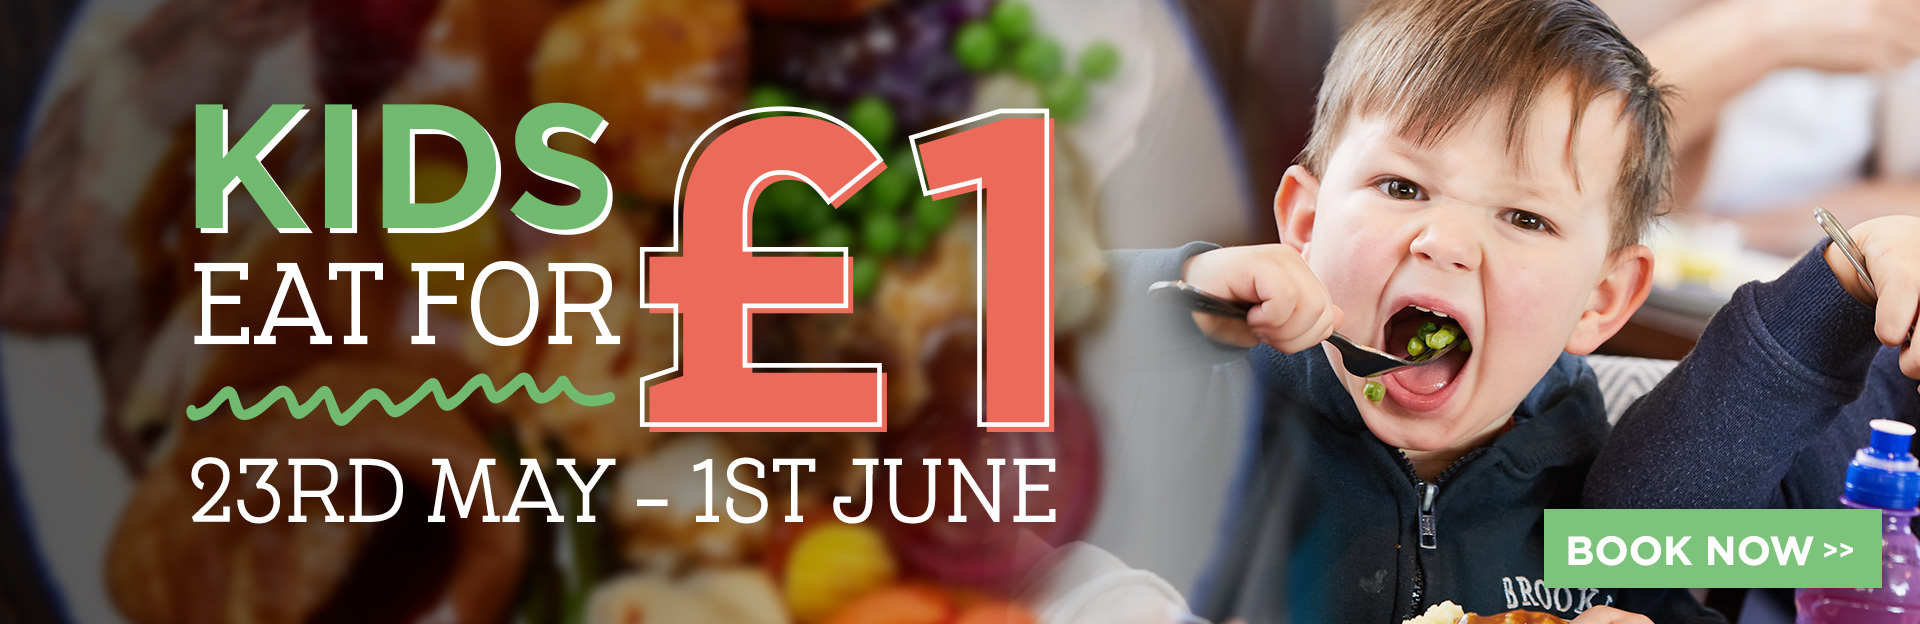 Kids eat for £1 at The Fox